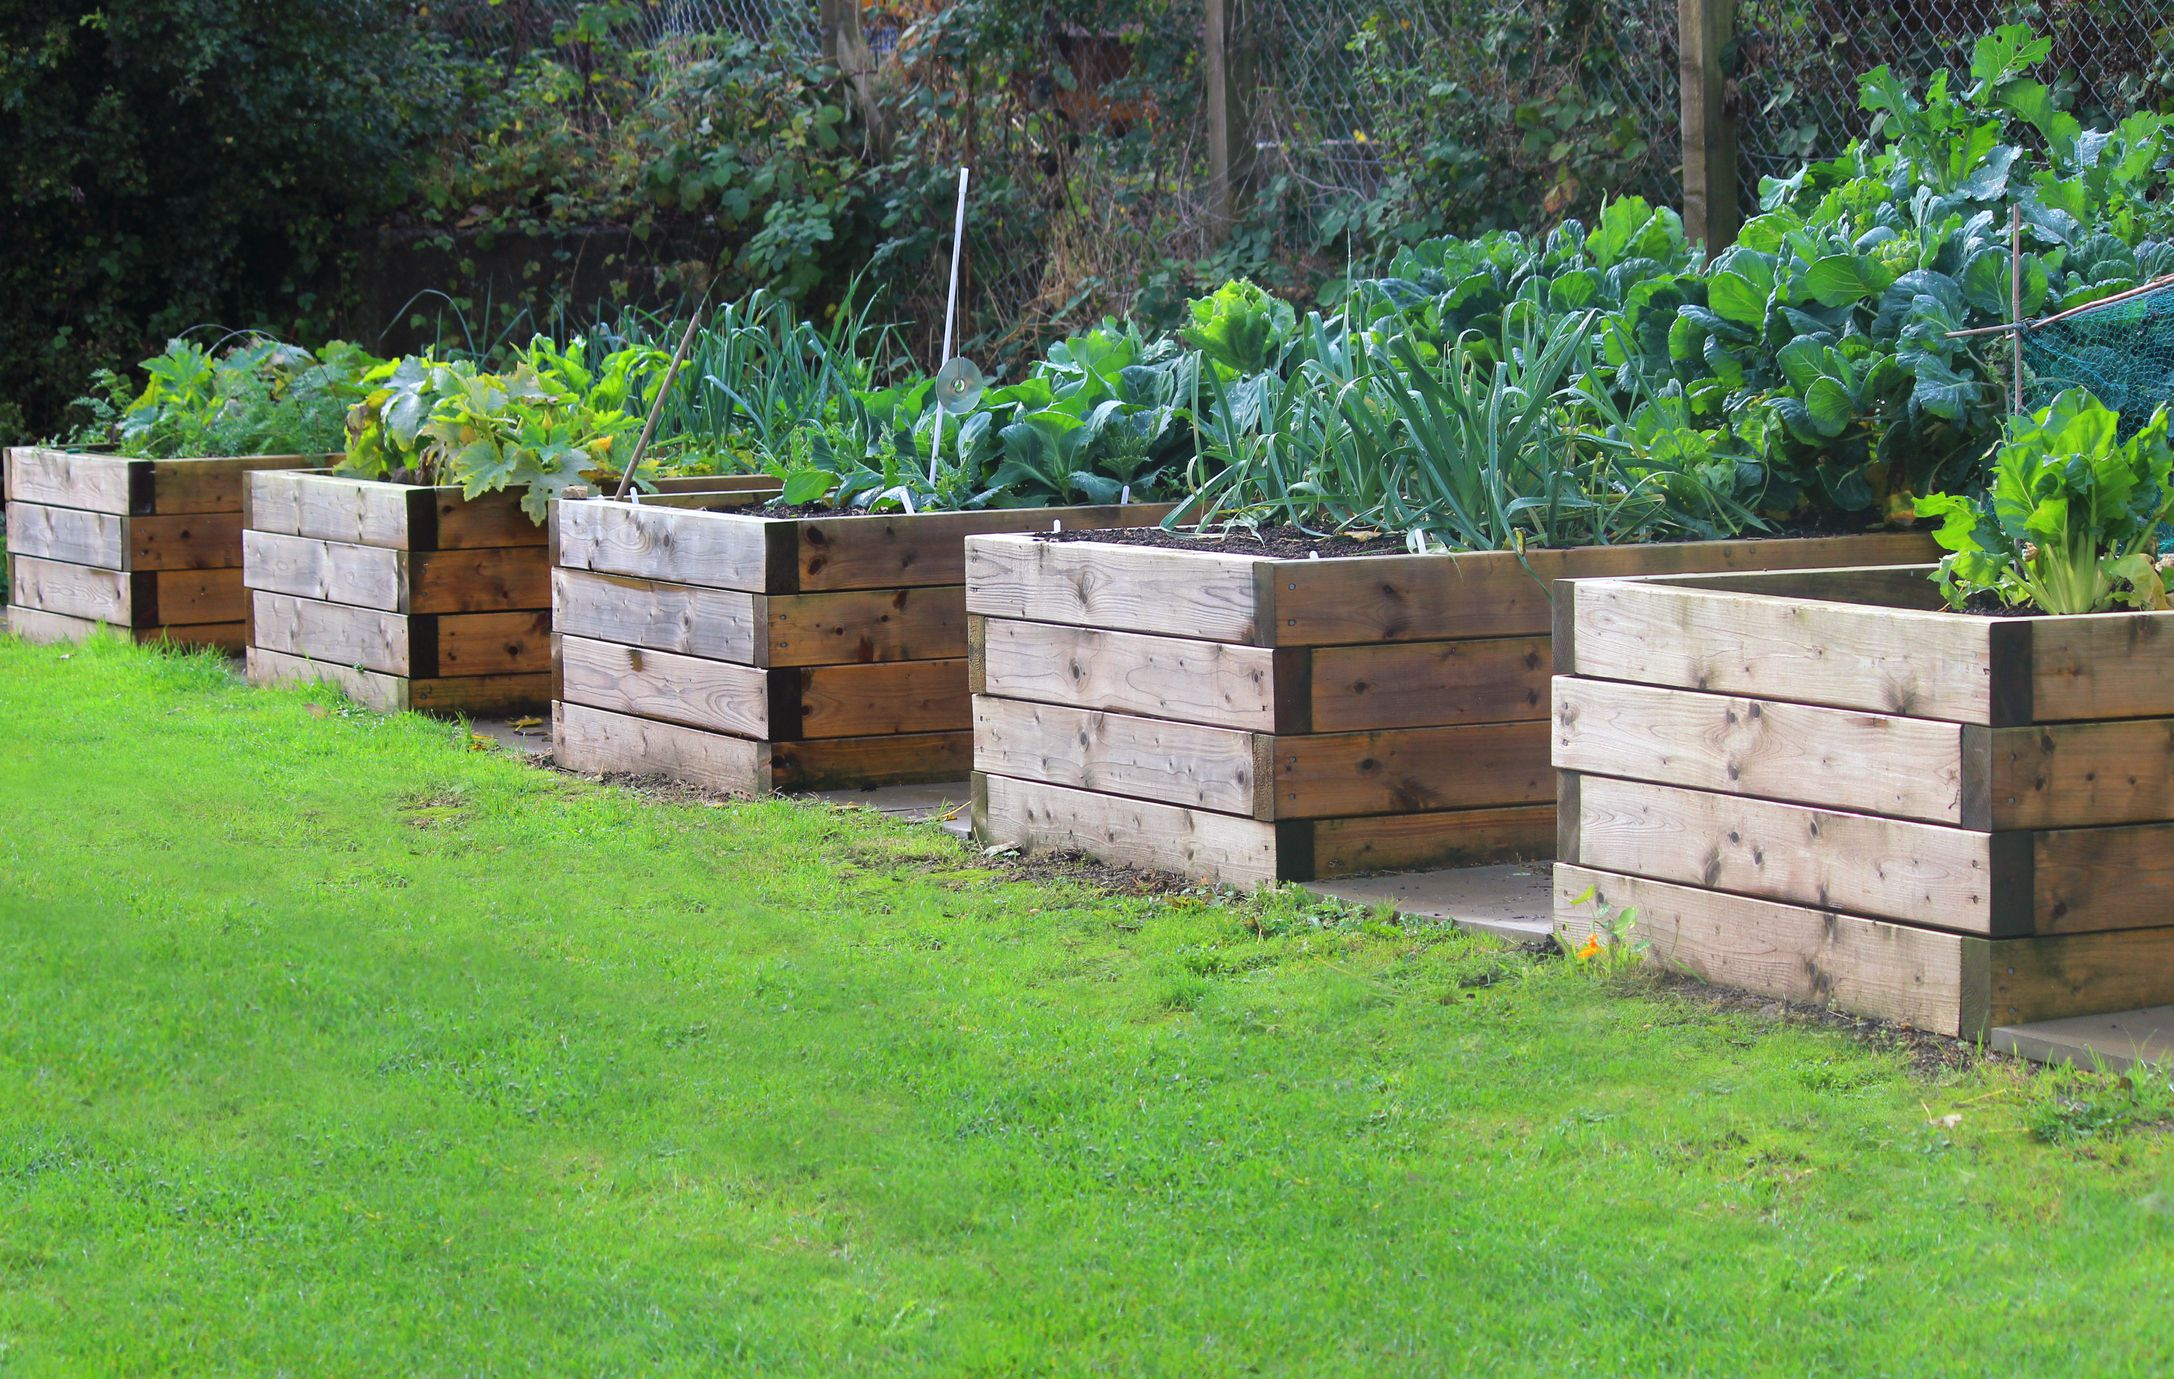 Make your garden more beautiful with garden beds